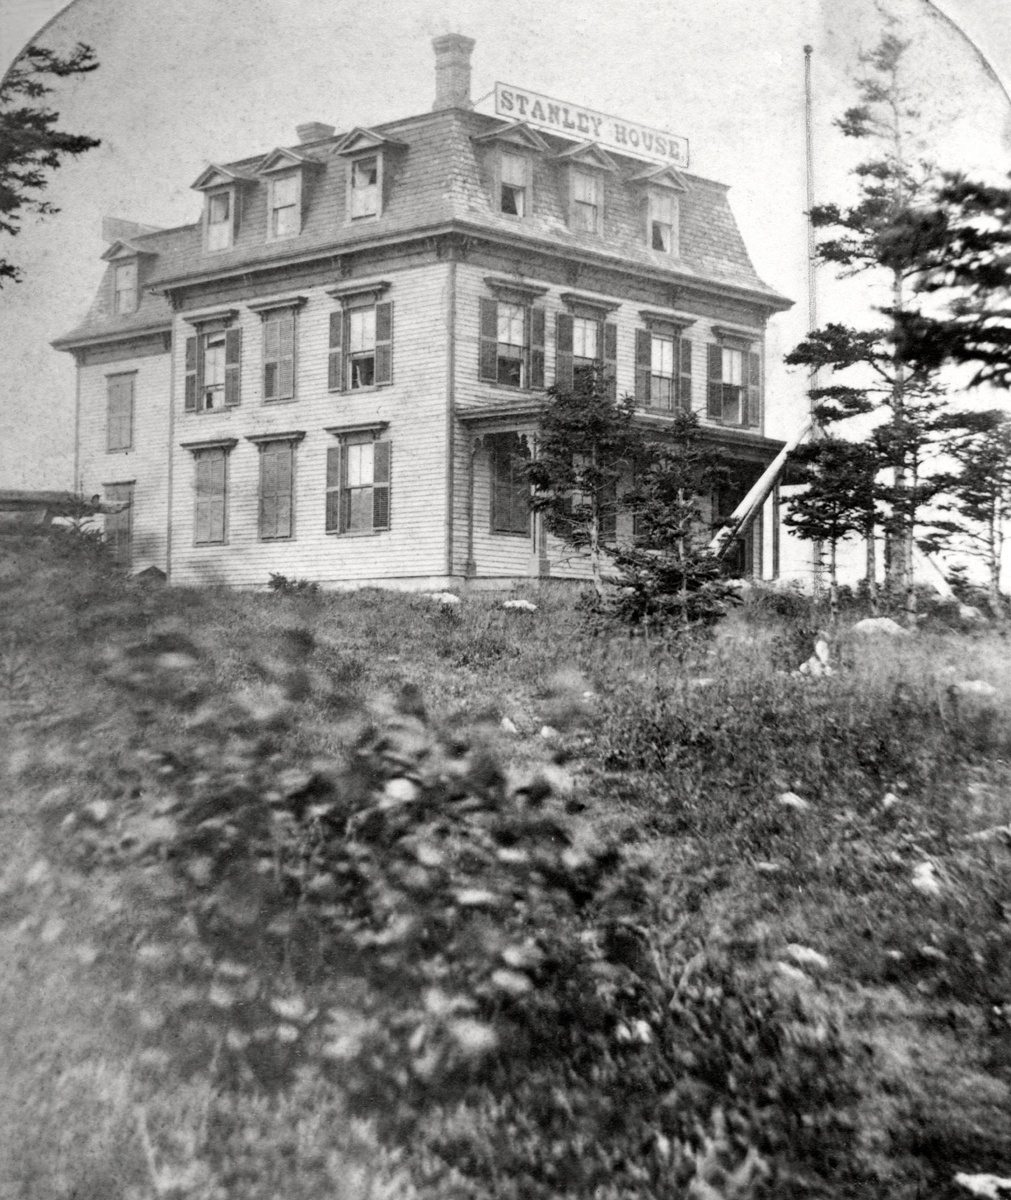 Original Stanley House Hotel with Mansard Roof